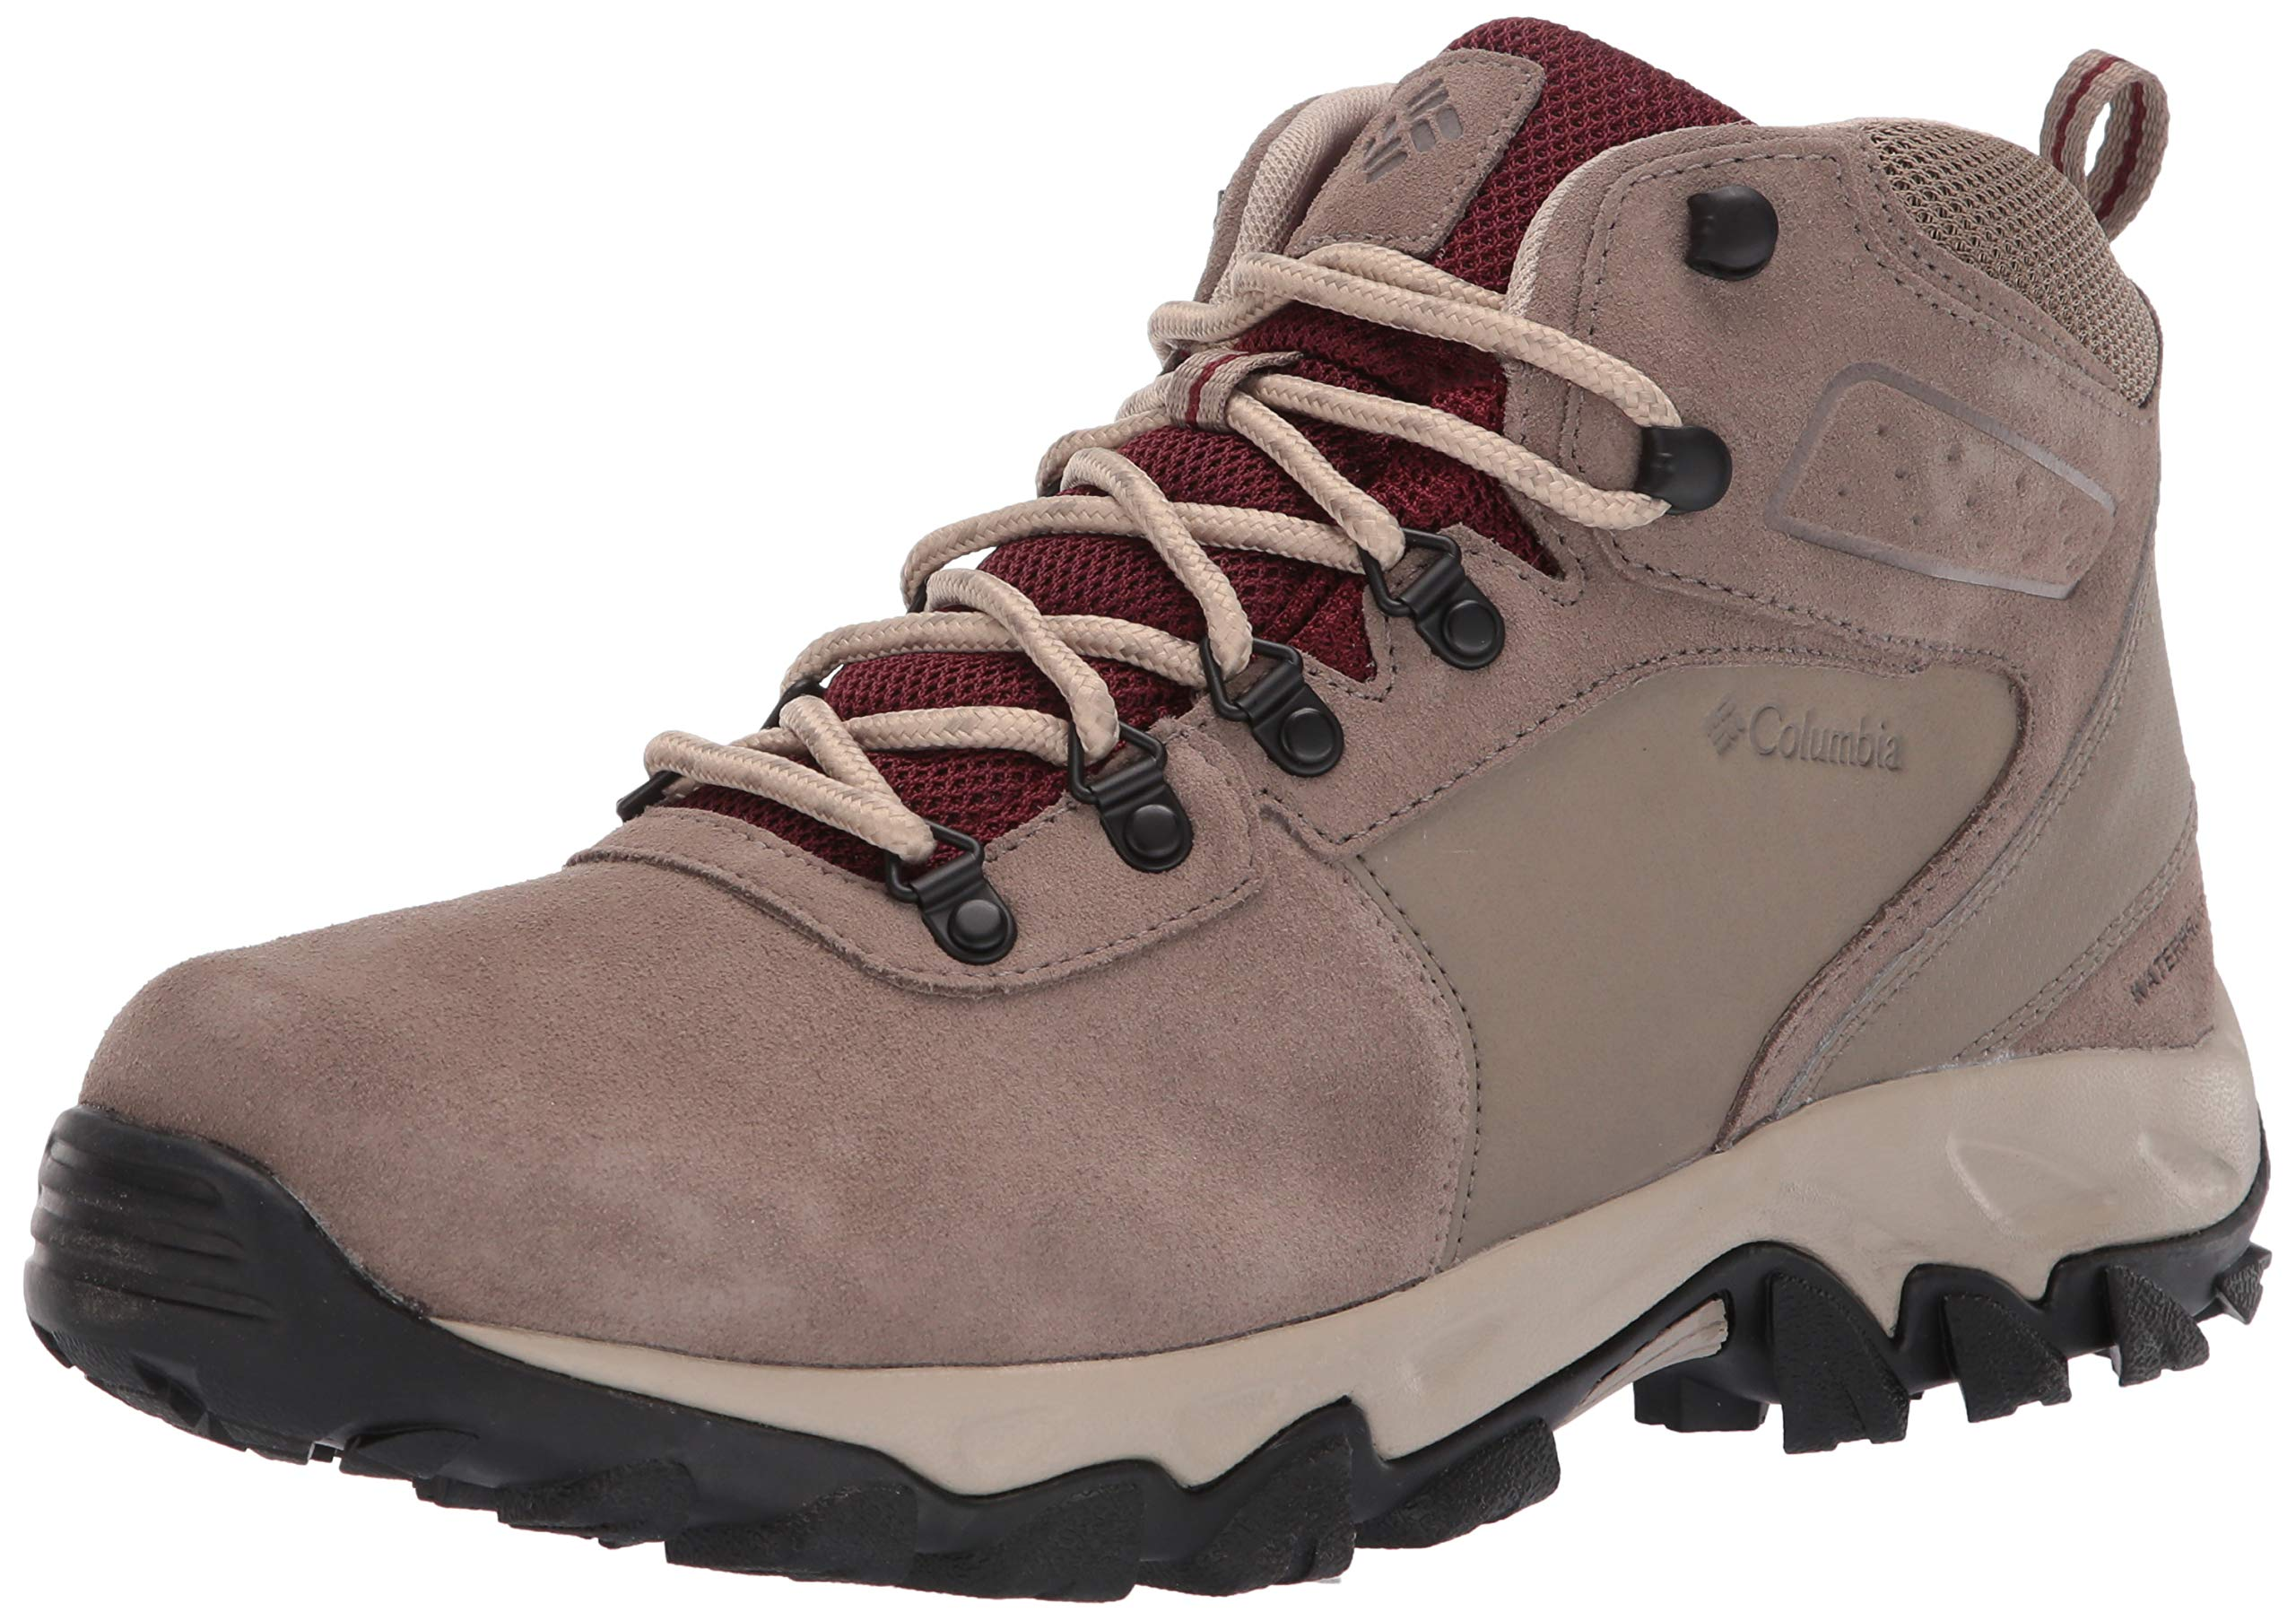 Columbia Men's Newton Ridge Plus II Suede Waterproof Boot Hiking, Pebble, deep Rust 7.5 Regular US